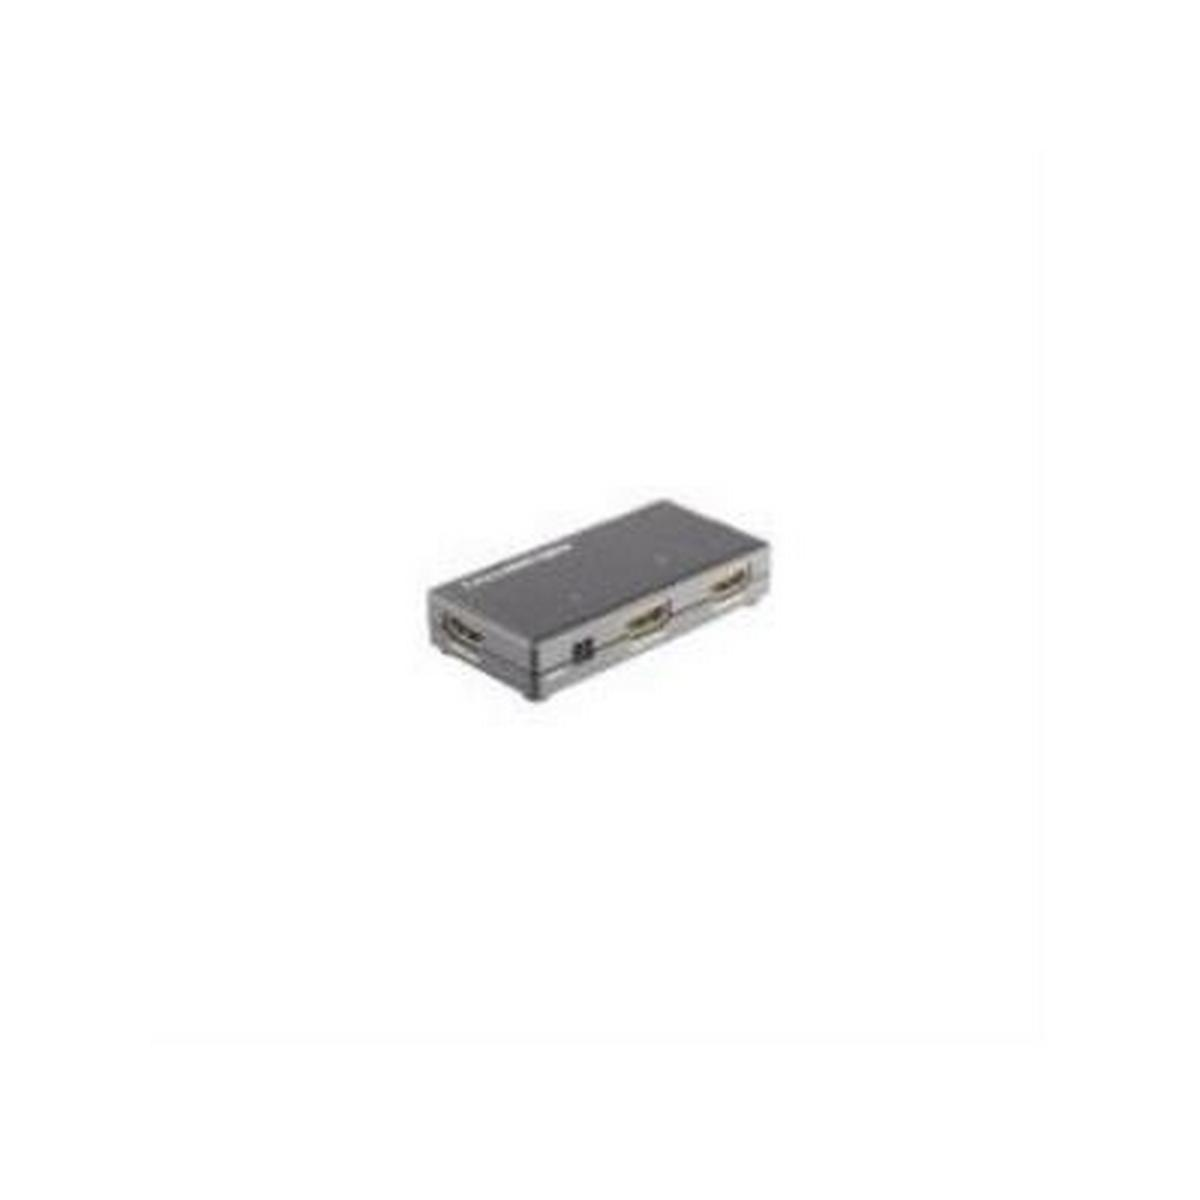 SR Components - HHSP2 - Hdmi Splitter 1 In 2 Out 1080p